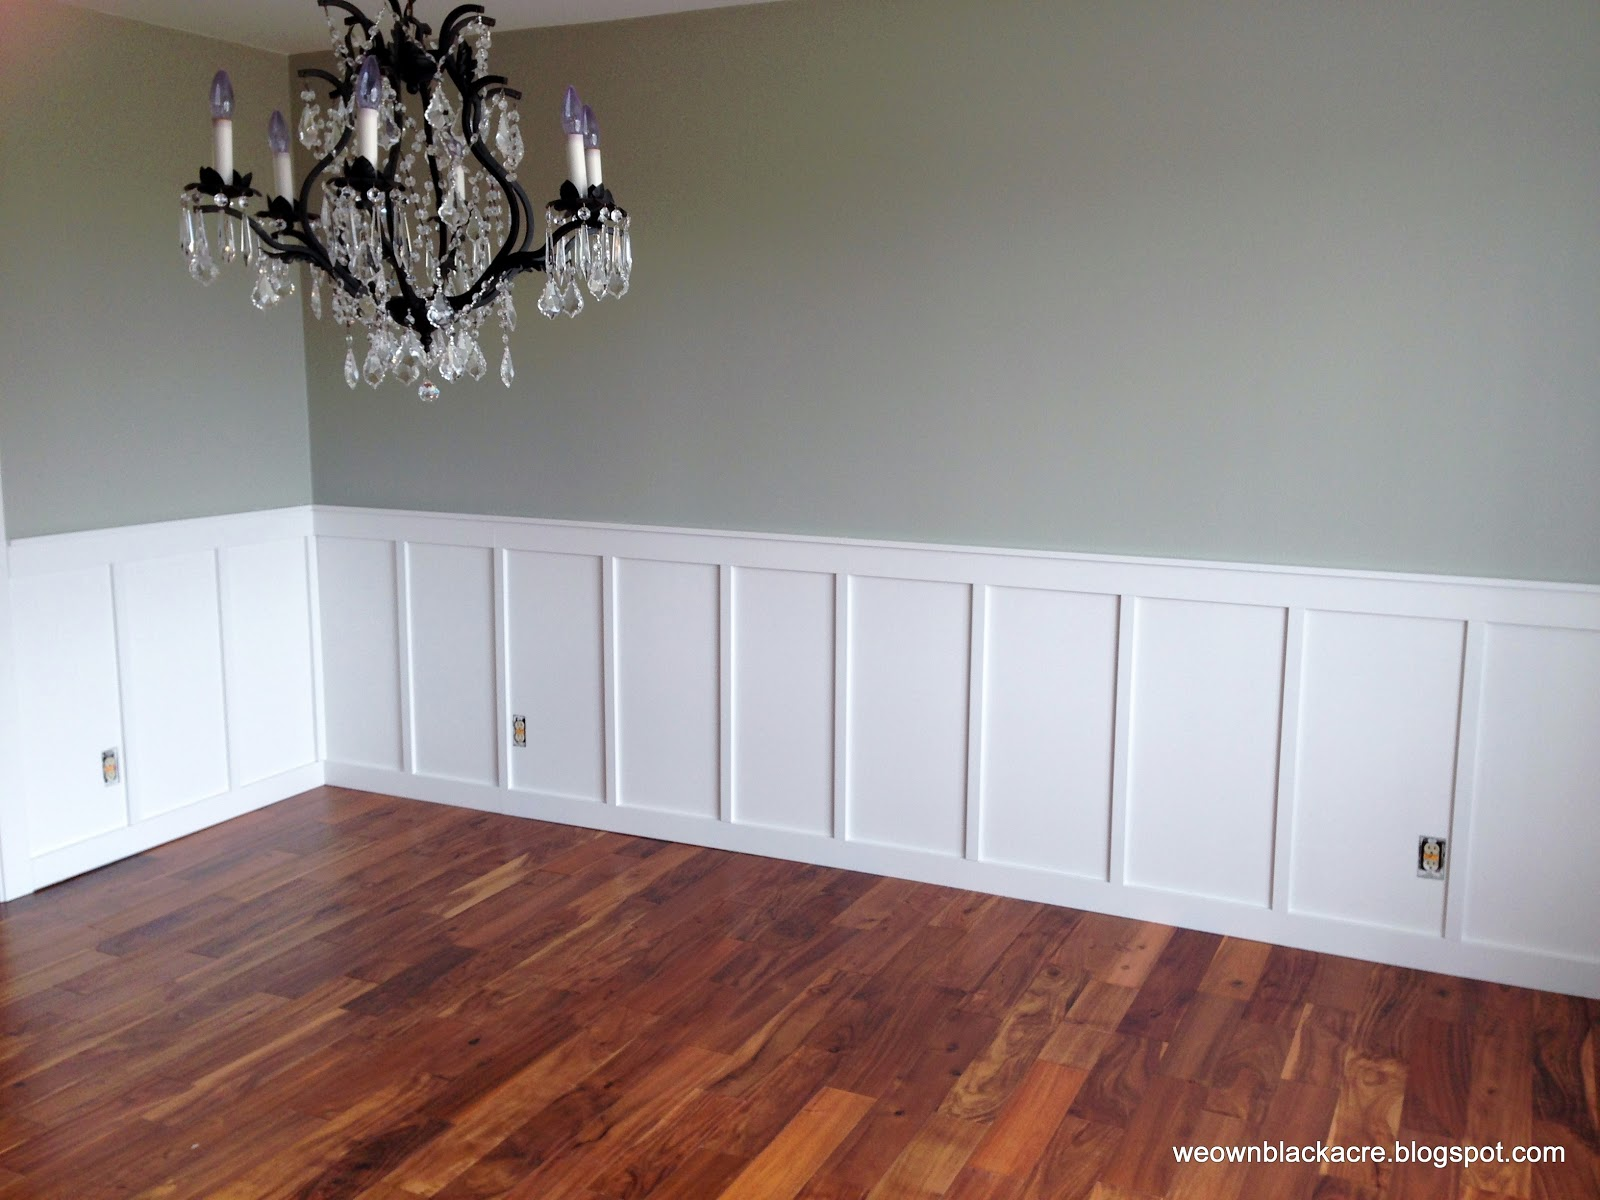 Wainscoting formal dining room - We Own Blackacre Adventures With Diy Board And Batten Wainscoting